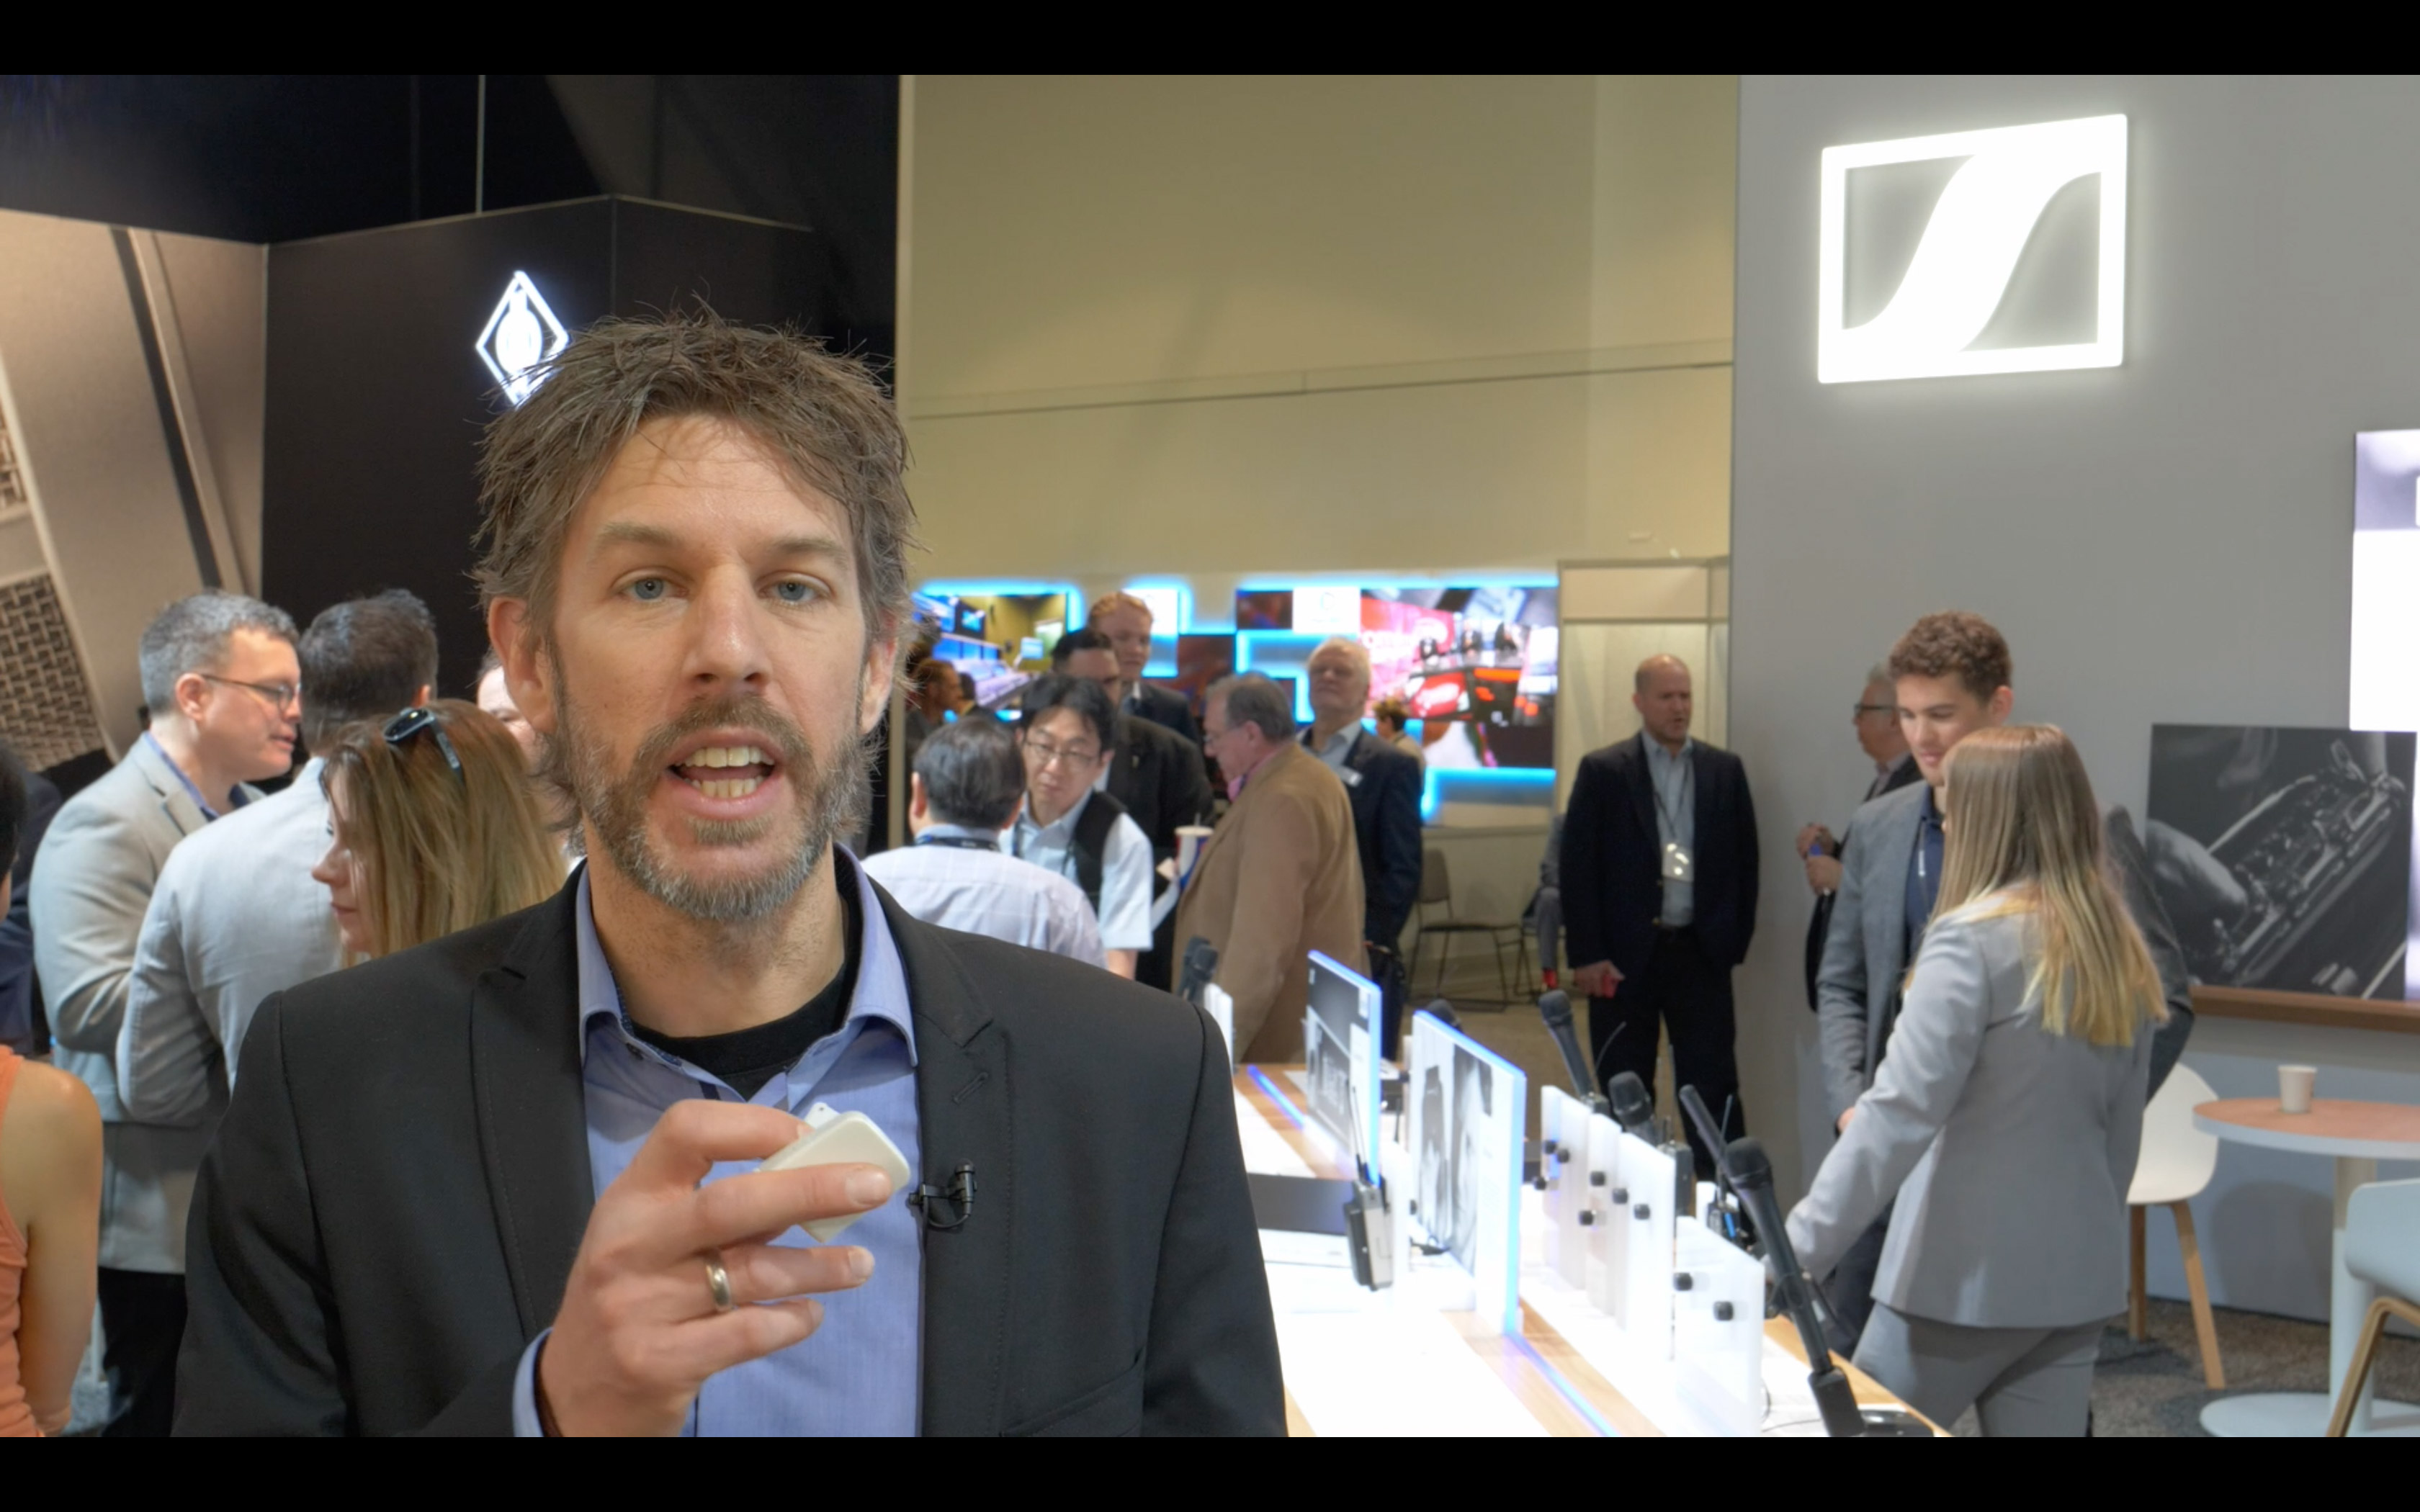 Trade fair video: Wireless audio solution for smartphone: Sennheiser Memory Mike // NAB 2018